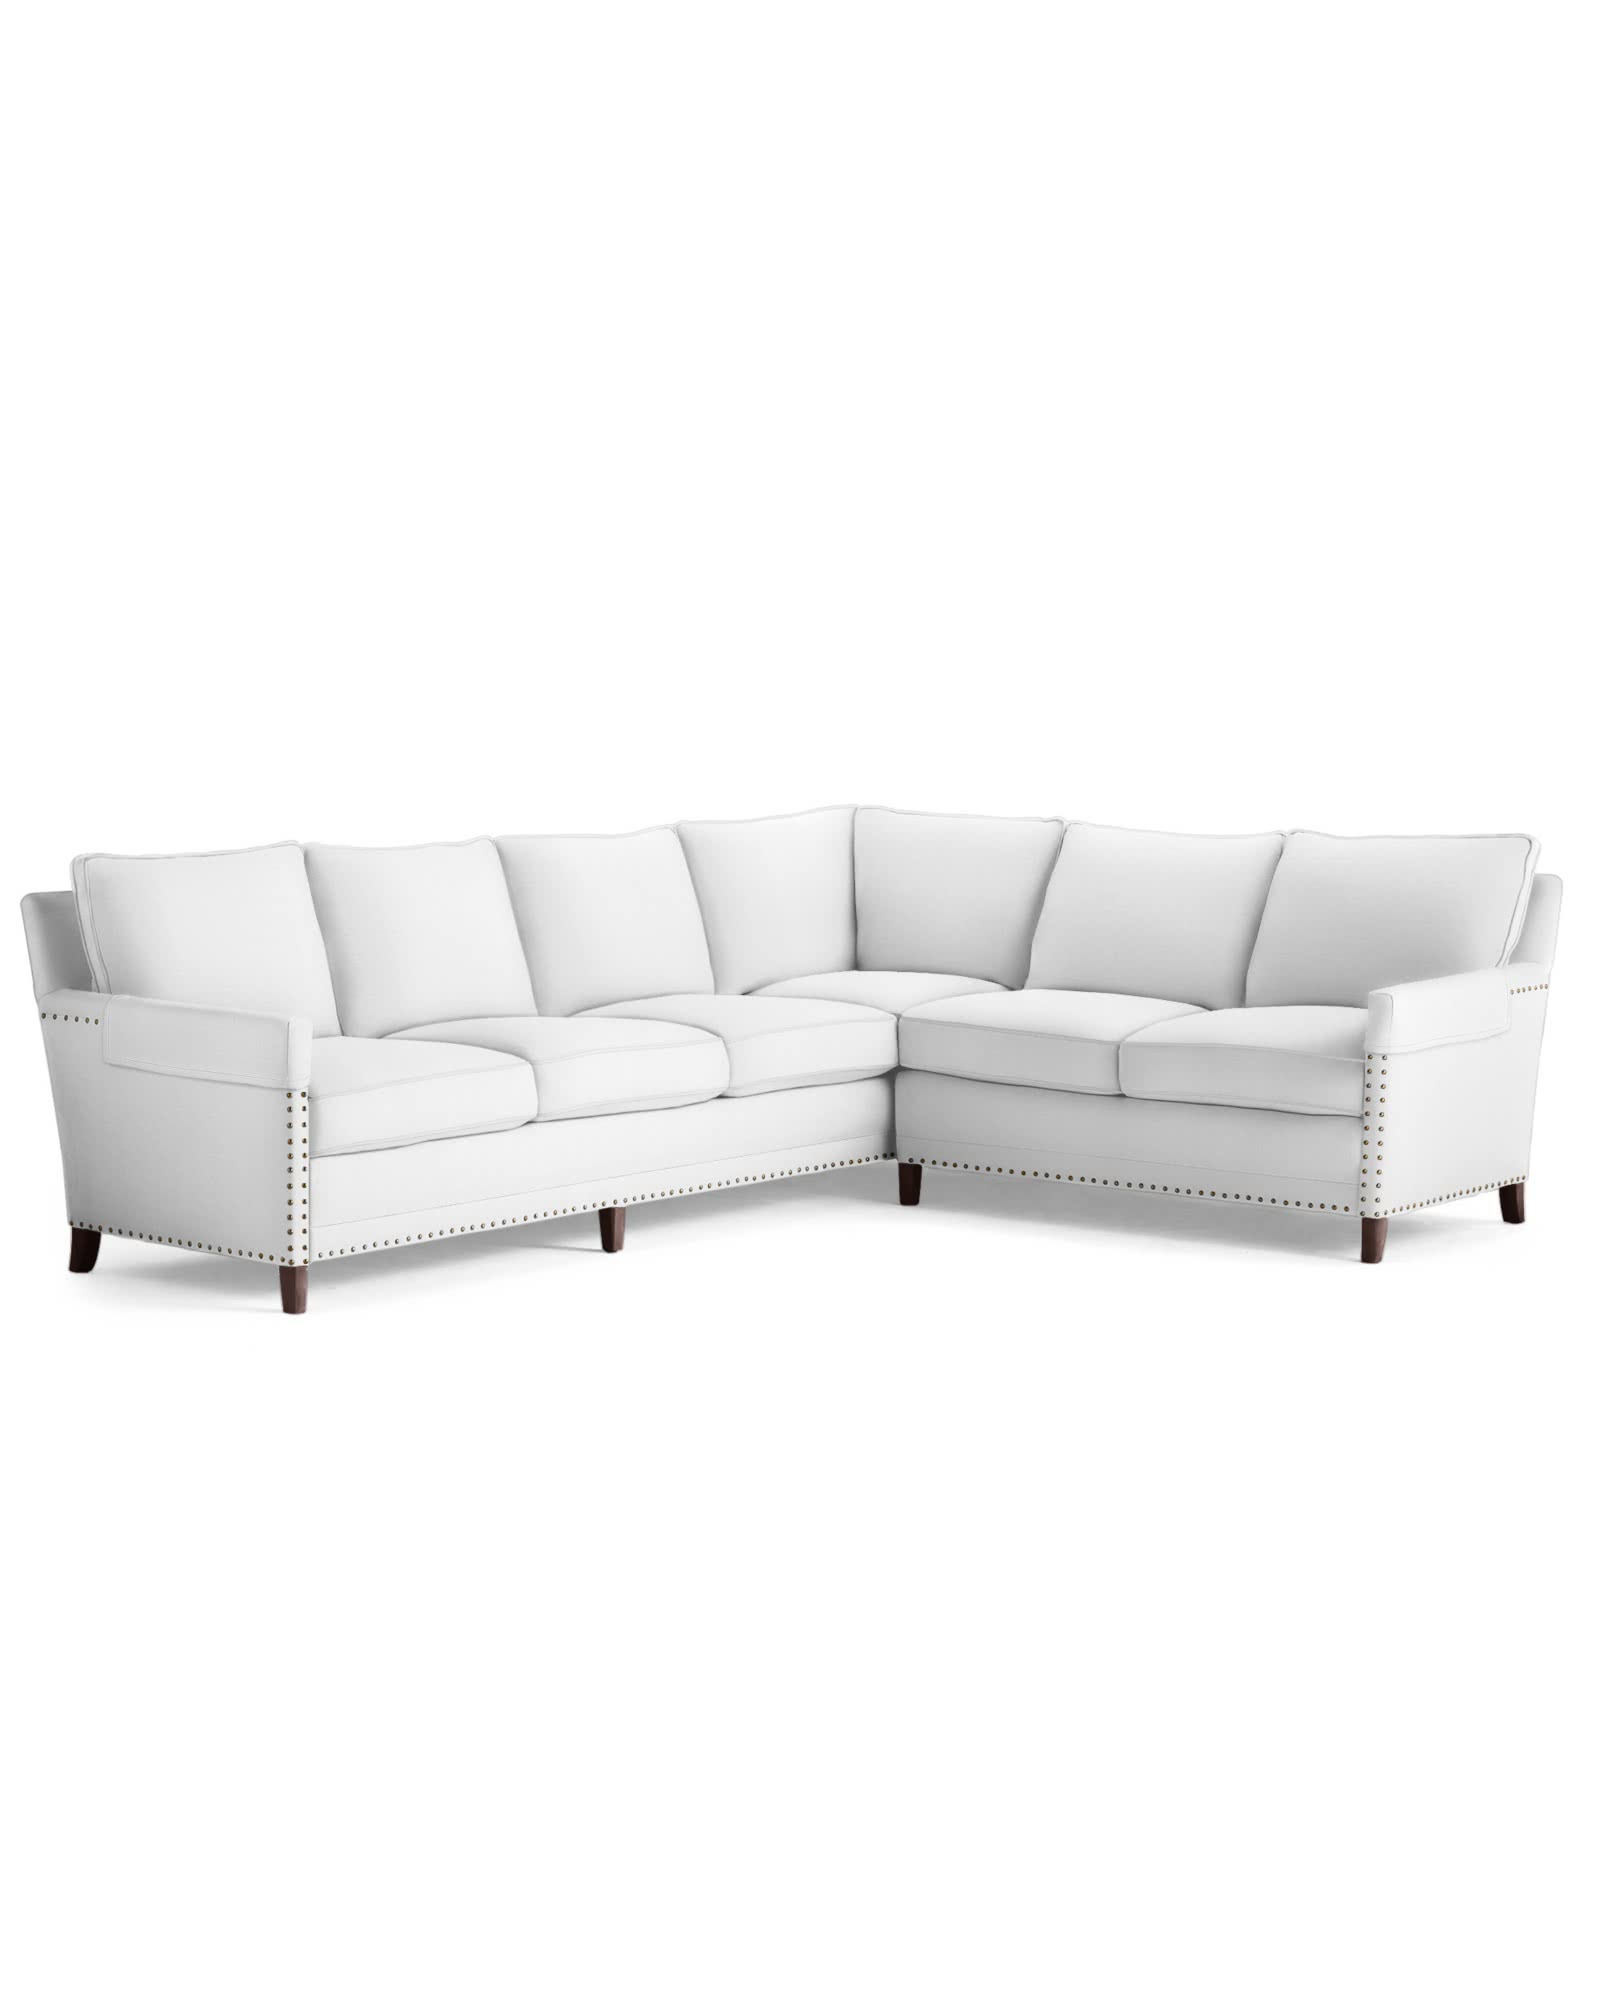 Spruce Street Right-Facing L-Sectional with Nailheads